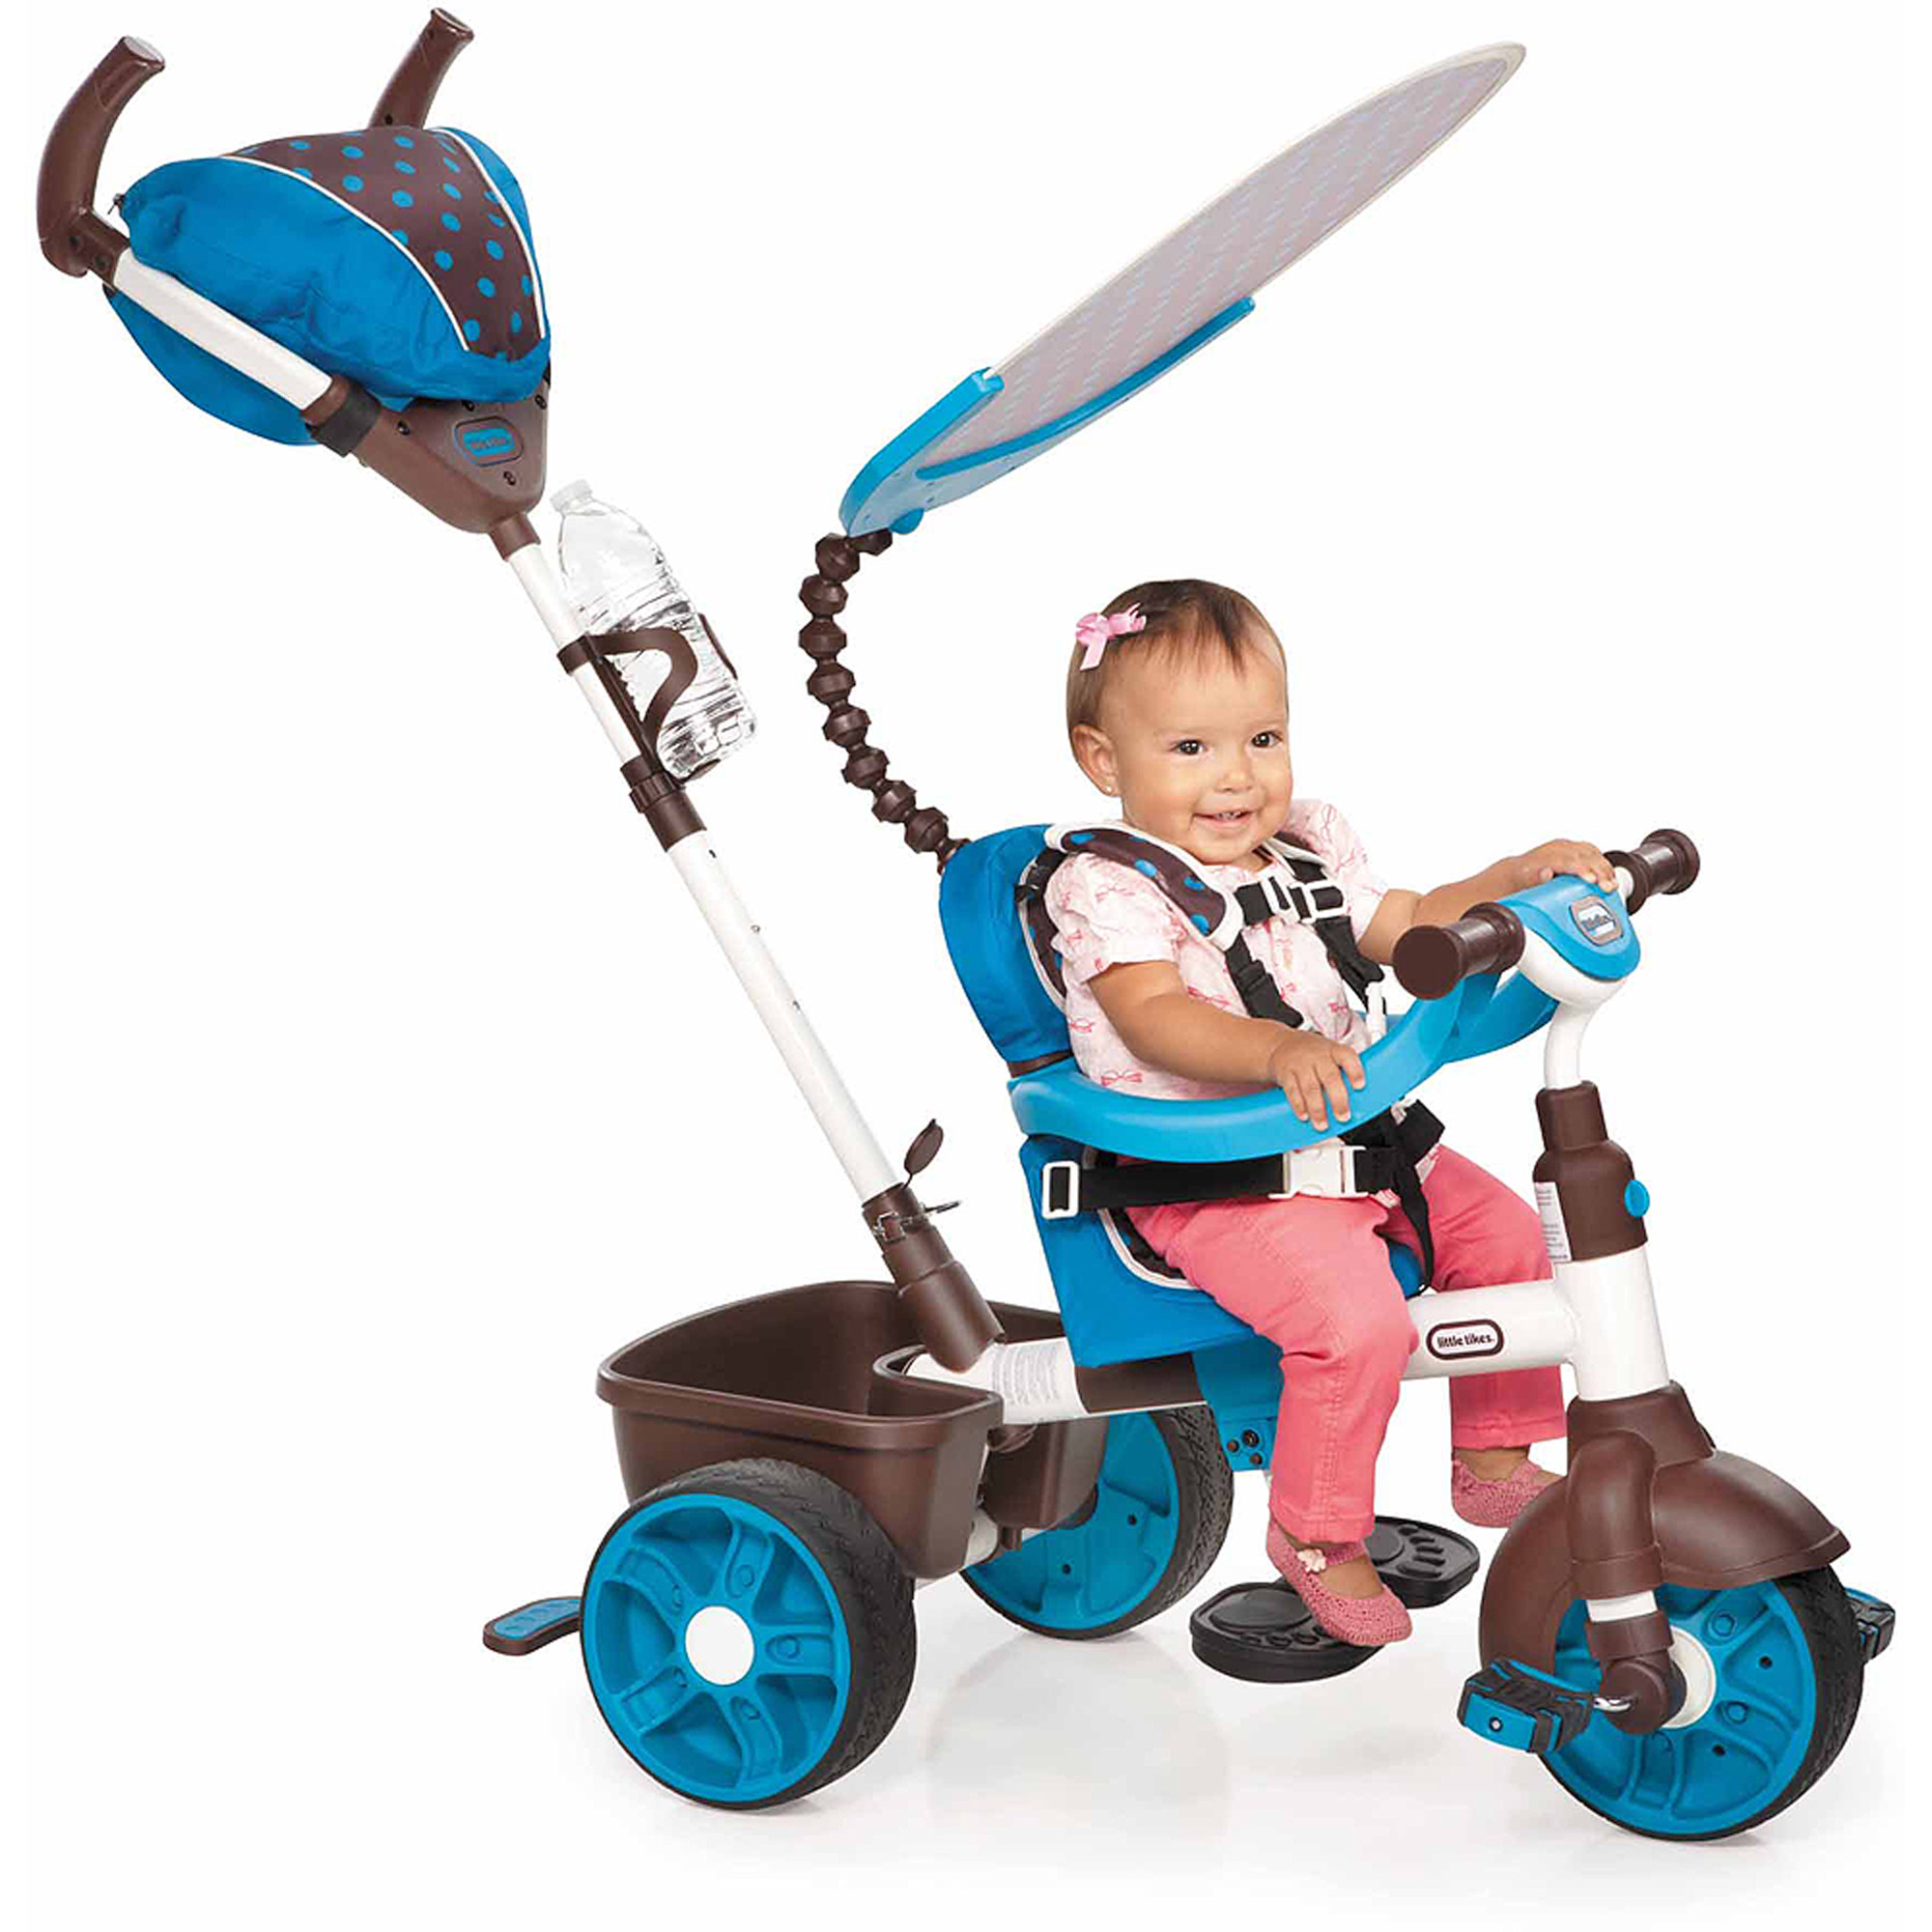 Little Tikes 4-in-1 Sports Edition Trike, Blue/White